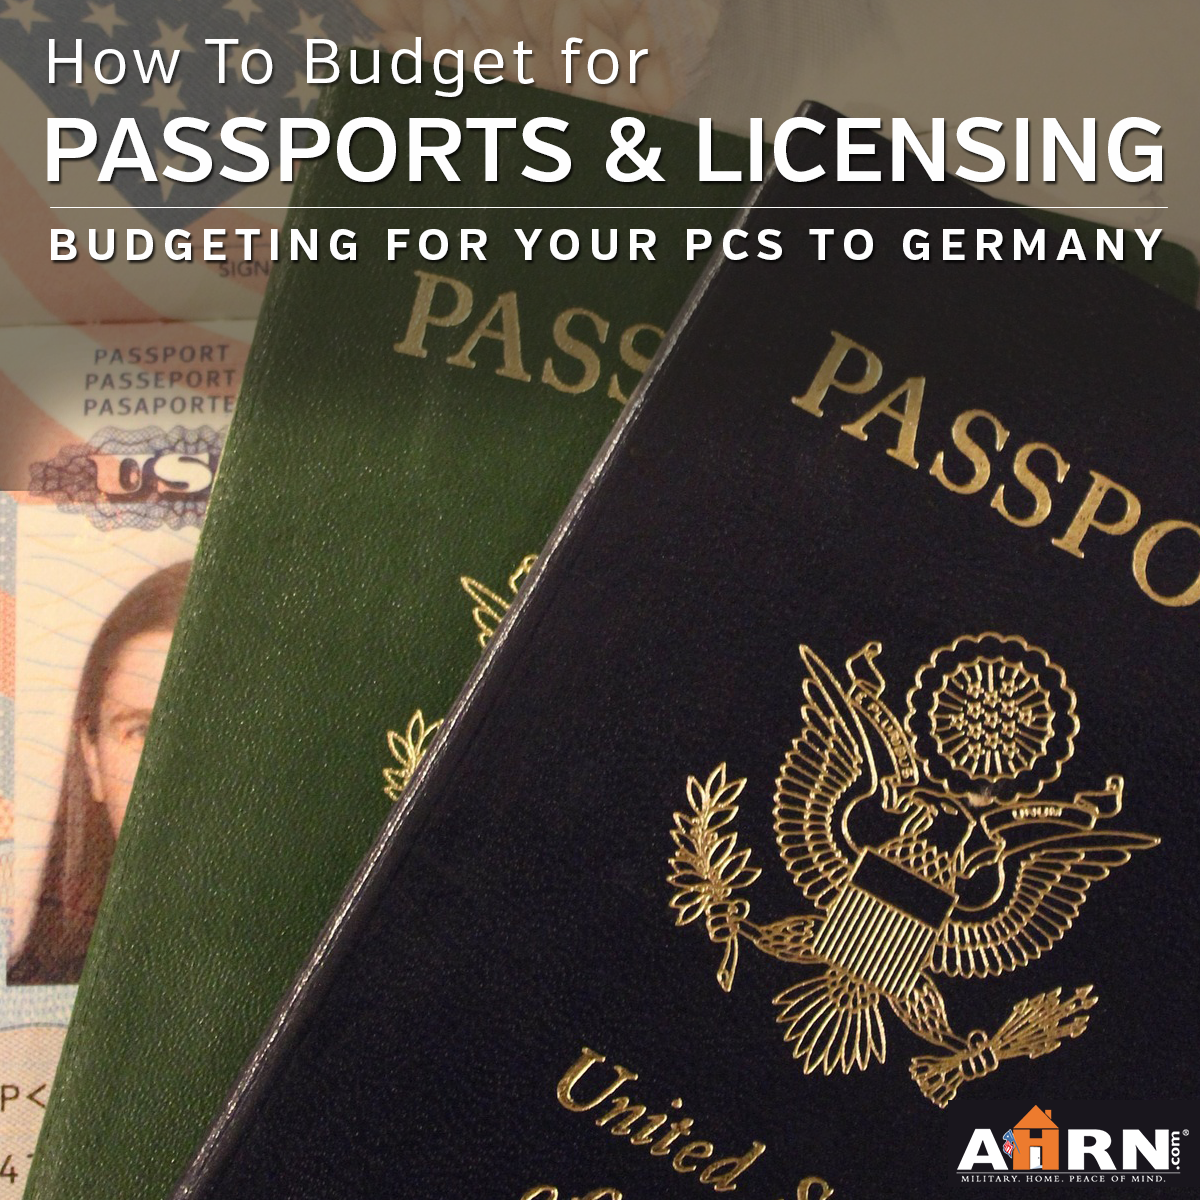 How to budget for passports and licensing when you're